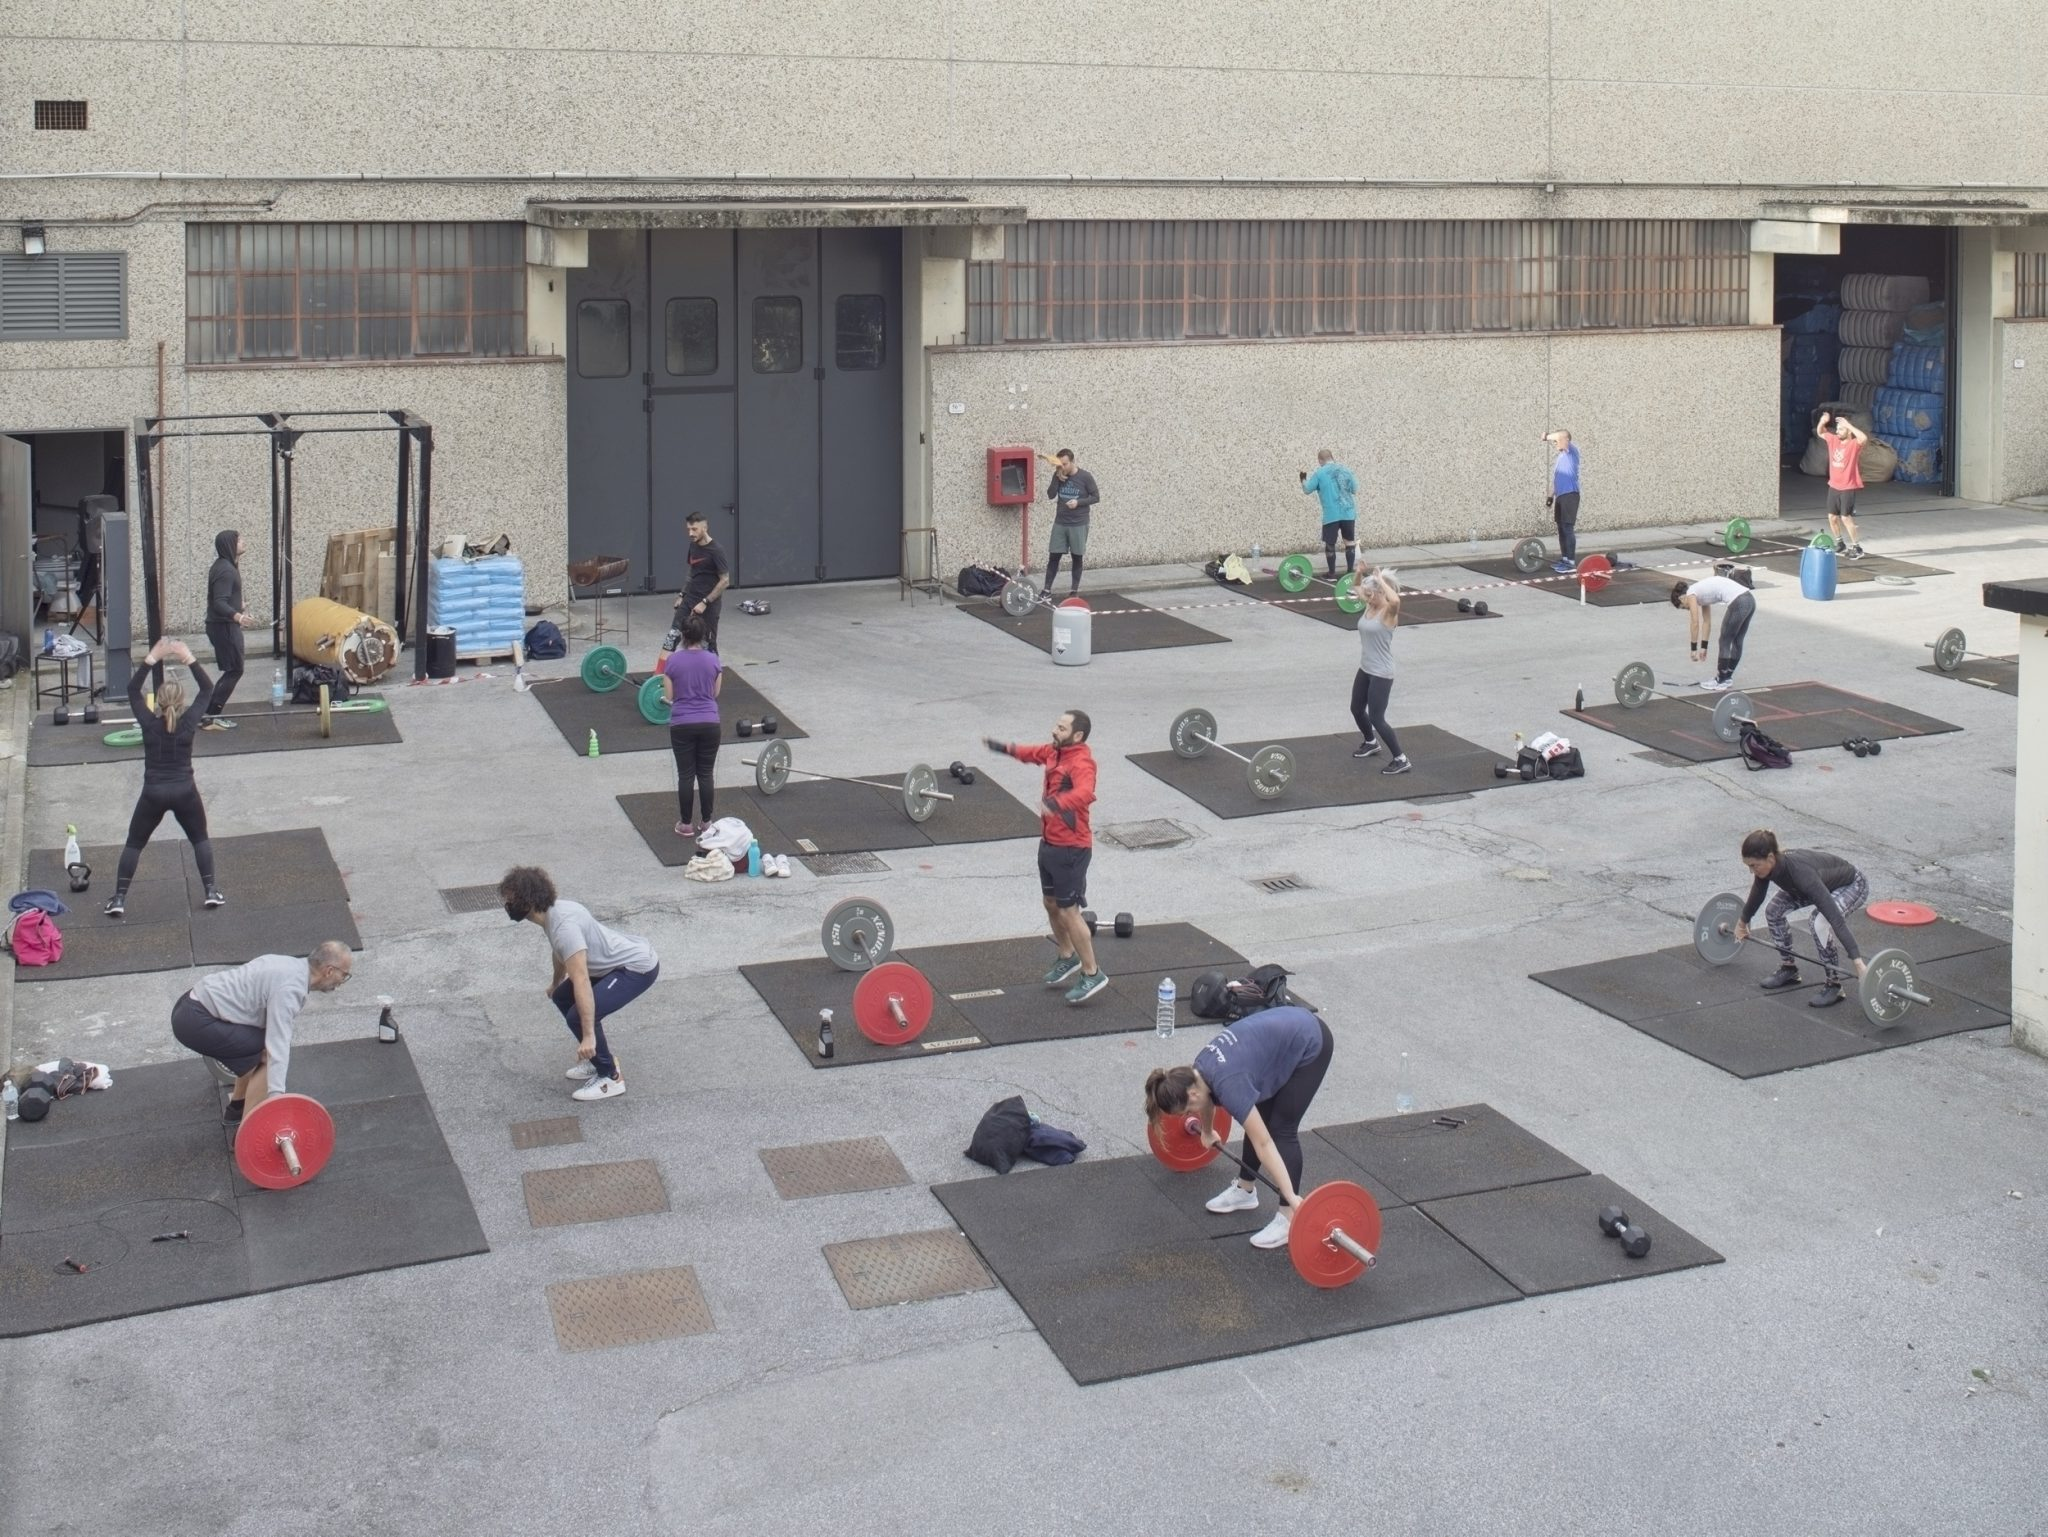 Crossfit gym in the industrial area of Prato, Italy, 2020